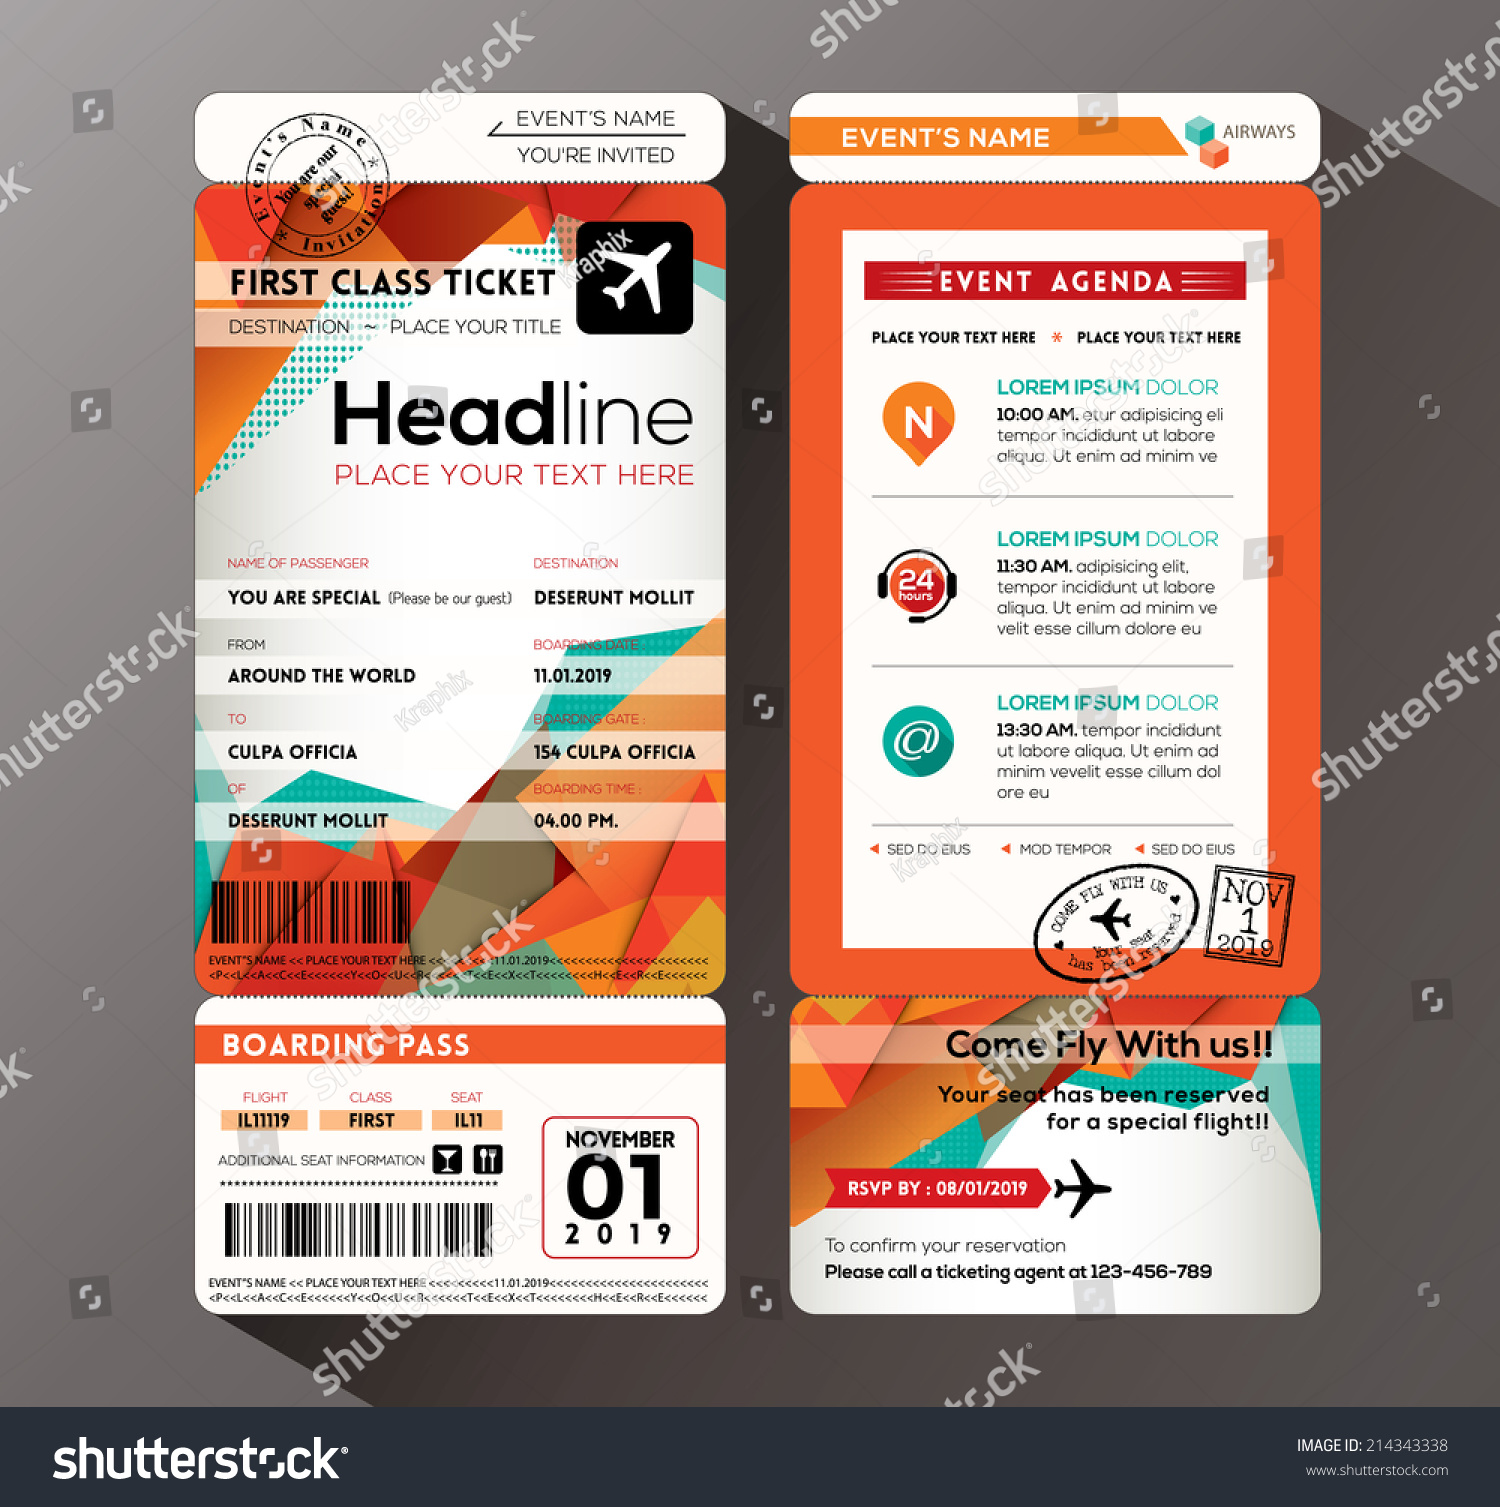 Modern Design Boarding Pass Ticket Event Vector 214343338 – Ticket Design Template